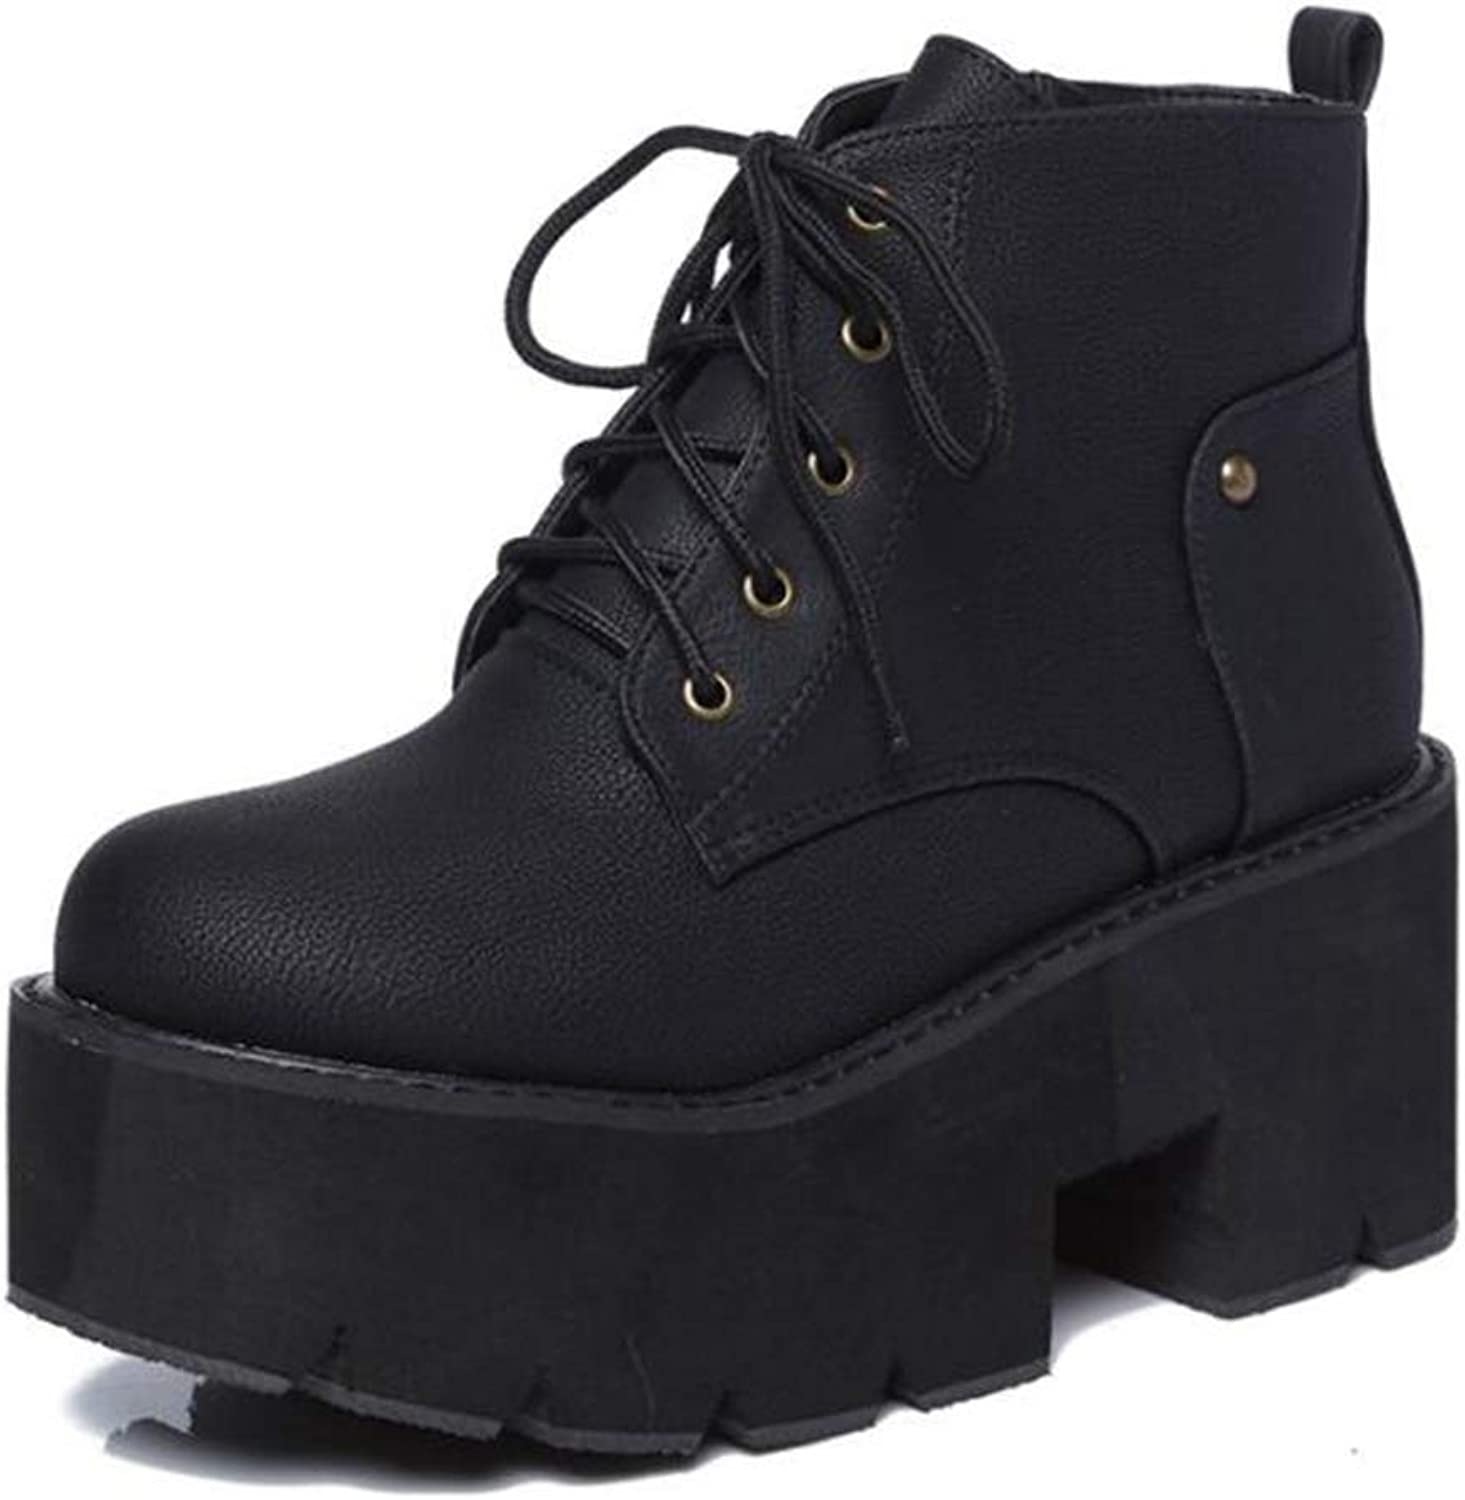 T-JULY Women's Brown Punk Boots Ladies Platform High Heel Winter shoes Lace up Motorcycle Waterproof Snow Ankle Boots